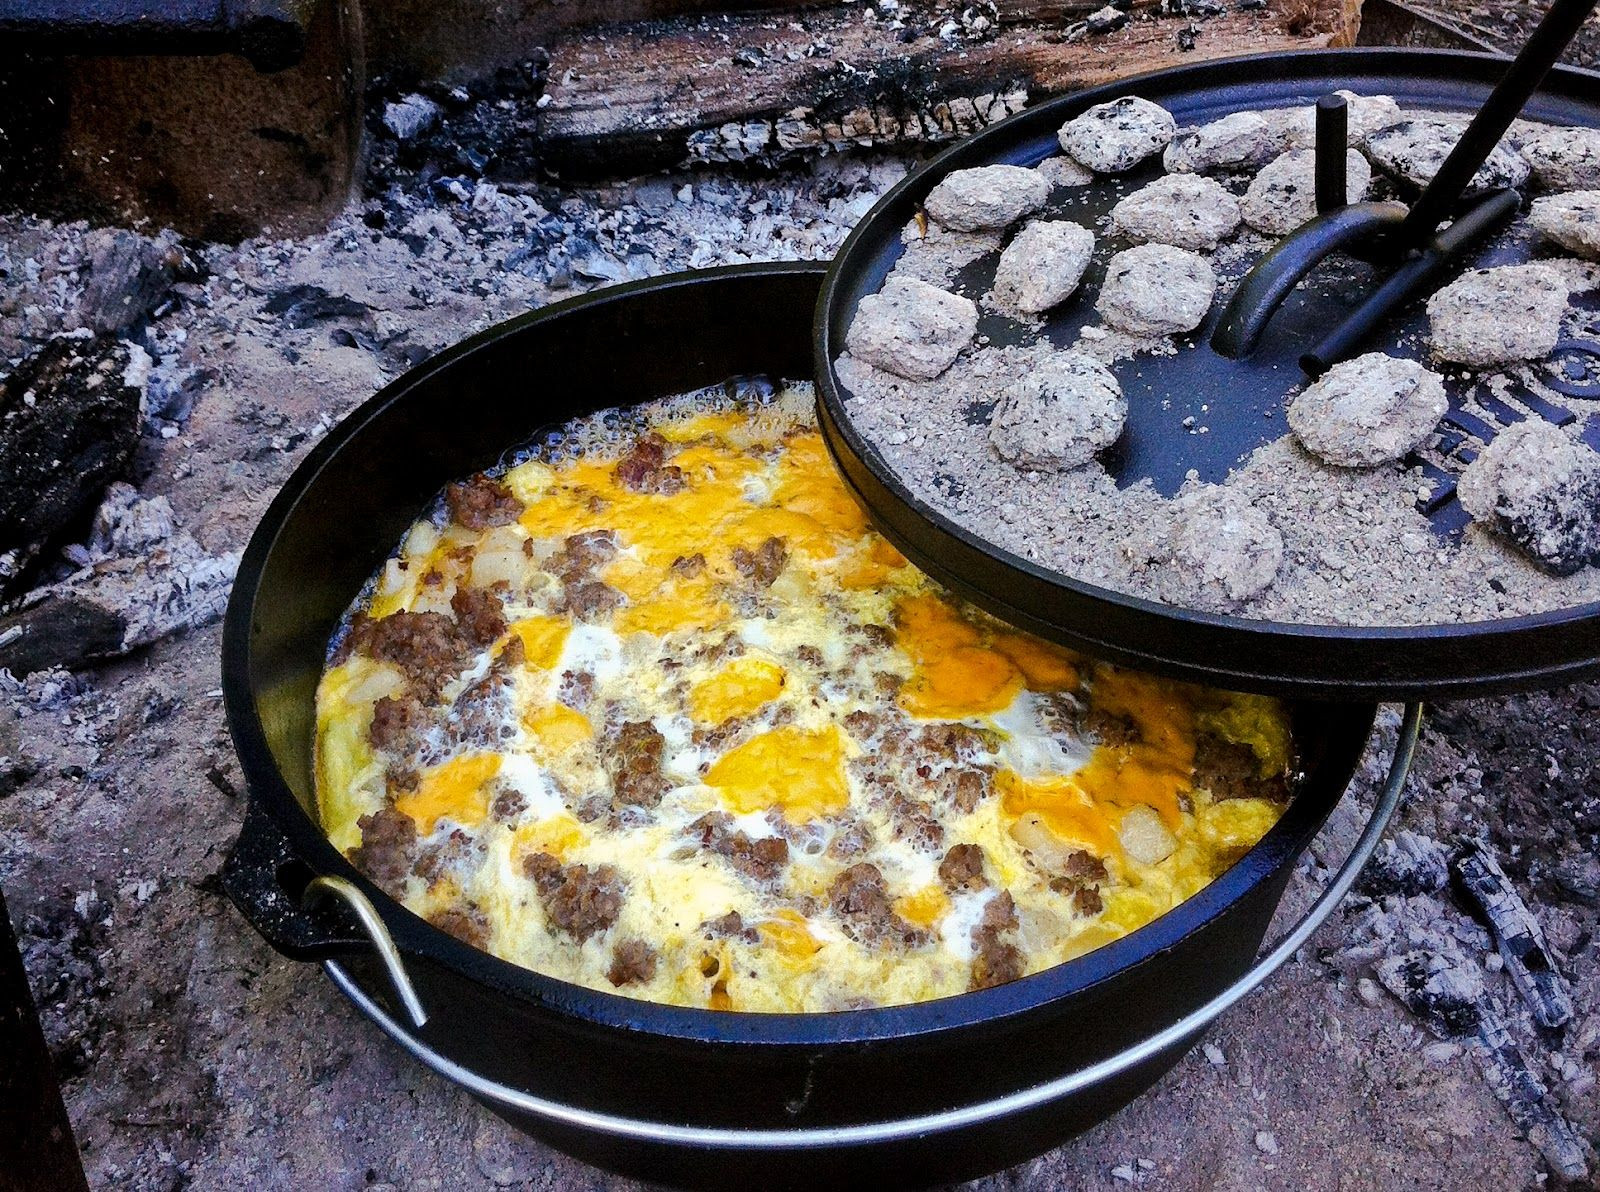 Dutch Oven Camping Recipes Breakfast  Mountain Man Breakfast Casserole cooked over hot coals in